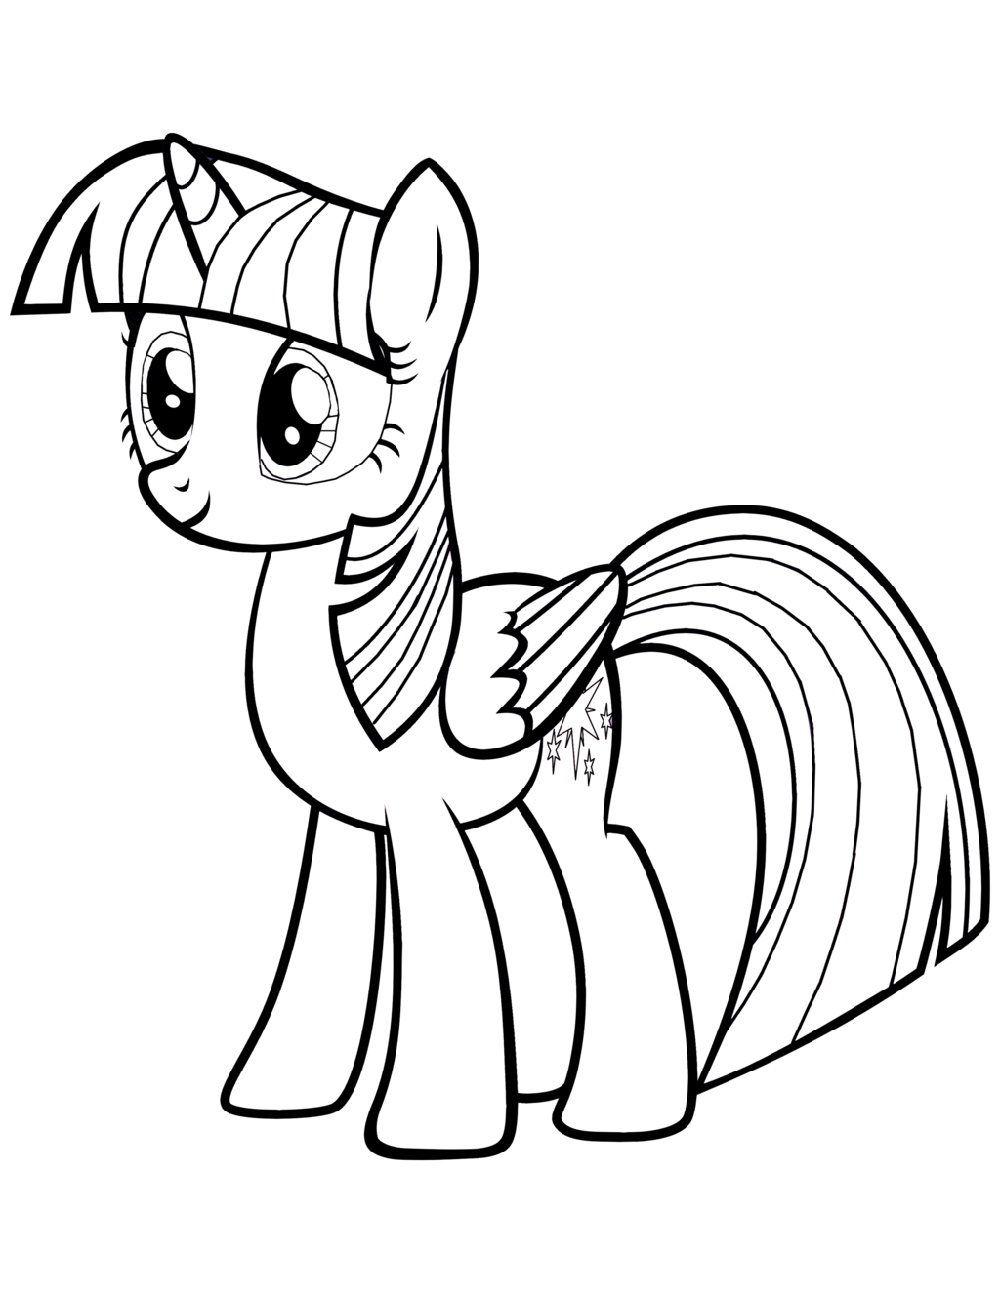 Alicorn Coloring Pages Printable K5 Worksheets